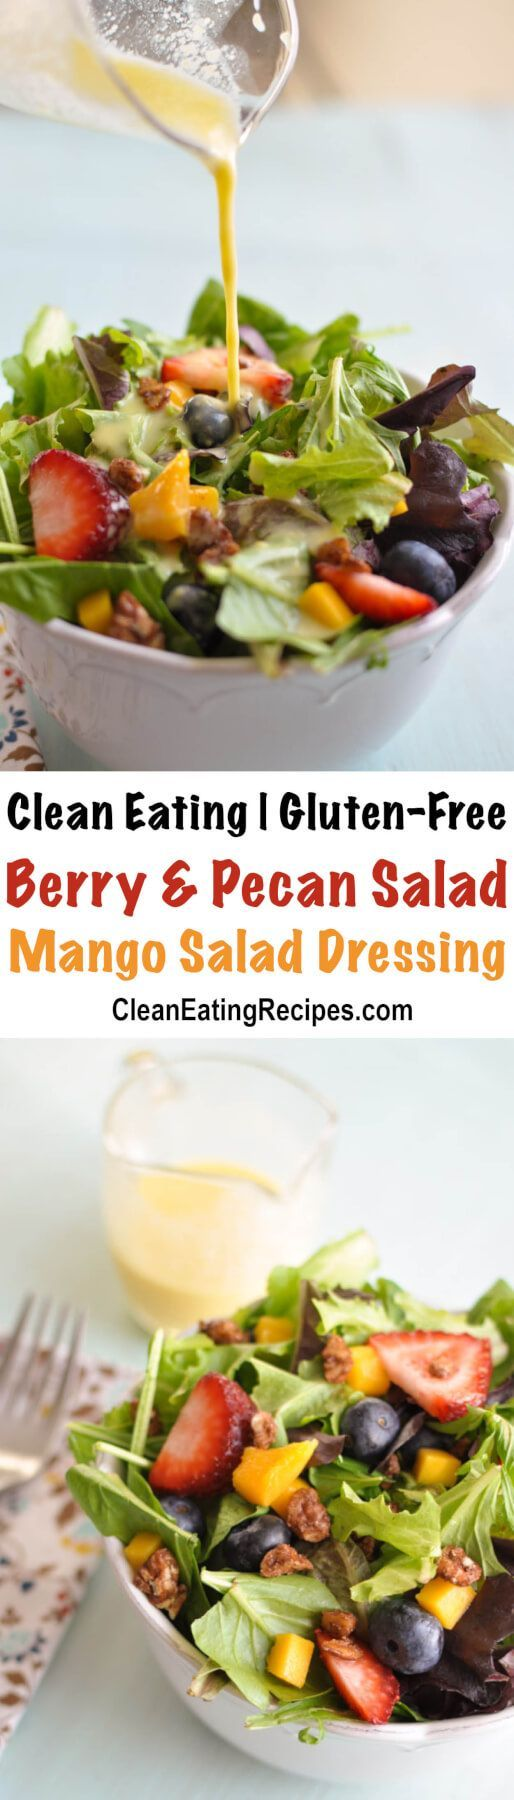 I love this light, refreshing Clean Eating green salad with mango salad dressing. It is the perfect compliment to pretty much any healthy meal. Oh, and don't forget the best part - the maple candied pecans! {Clean Eating, Gluten-Free}